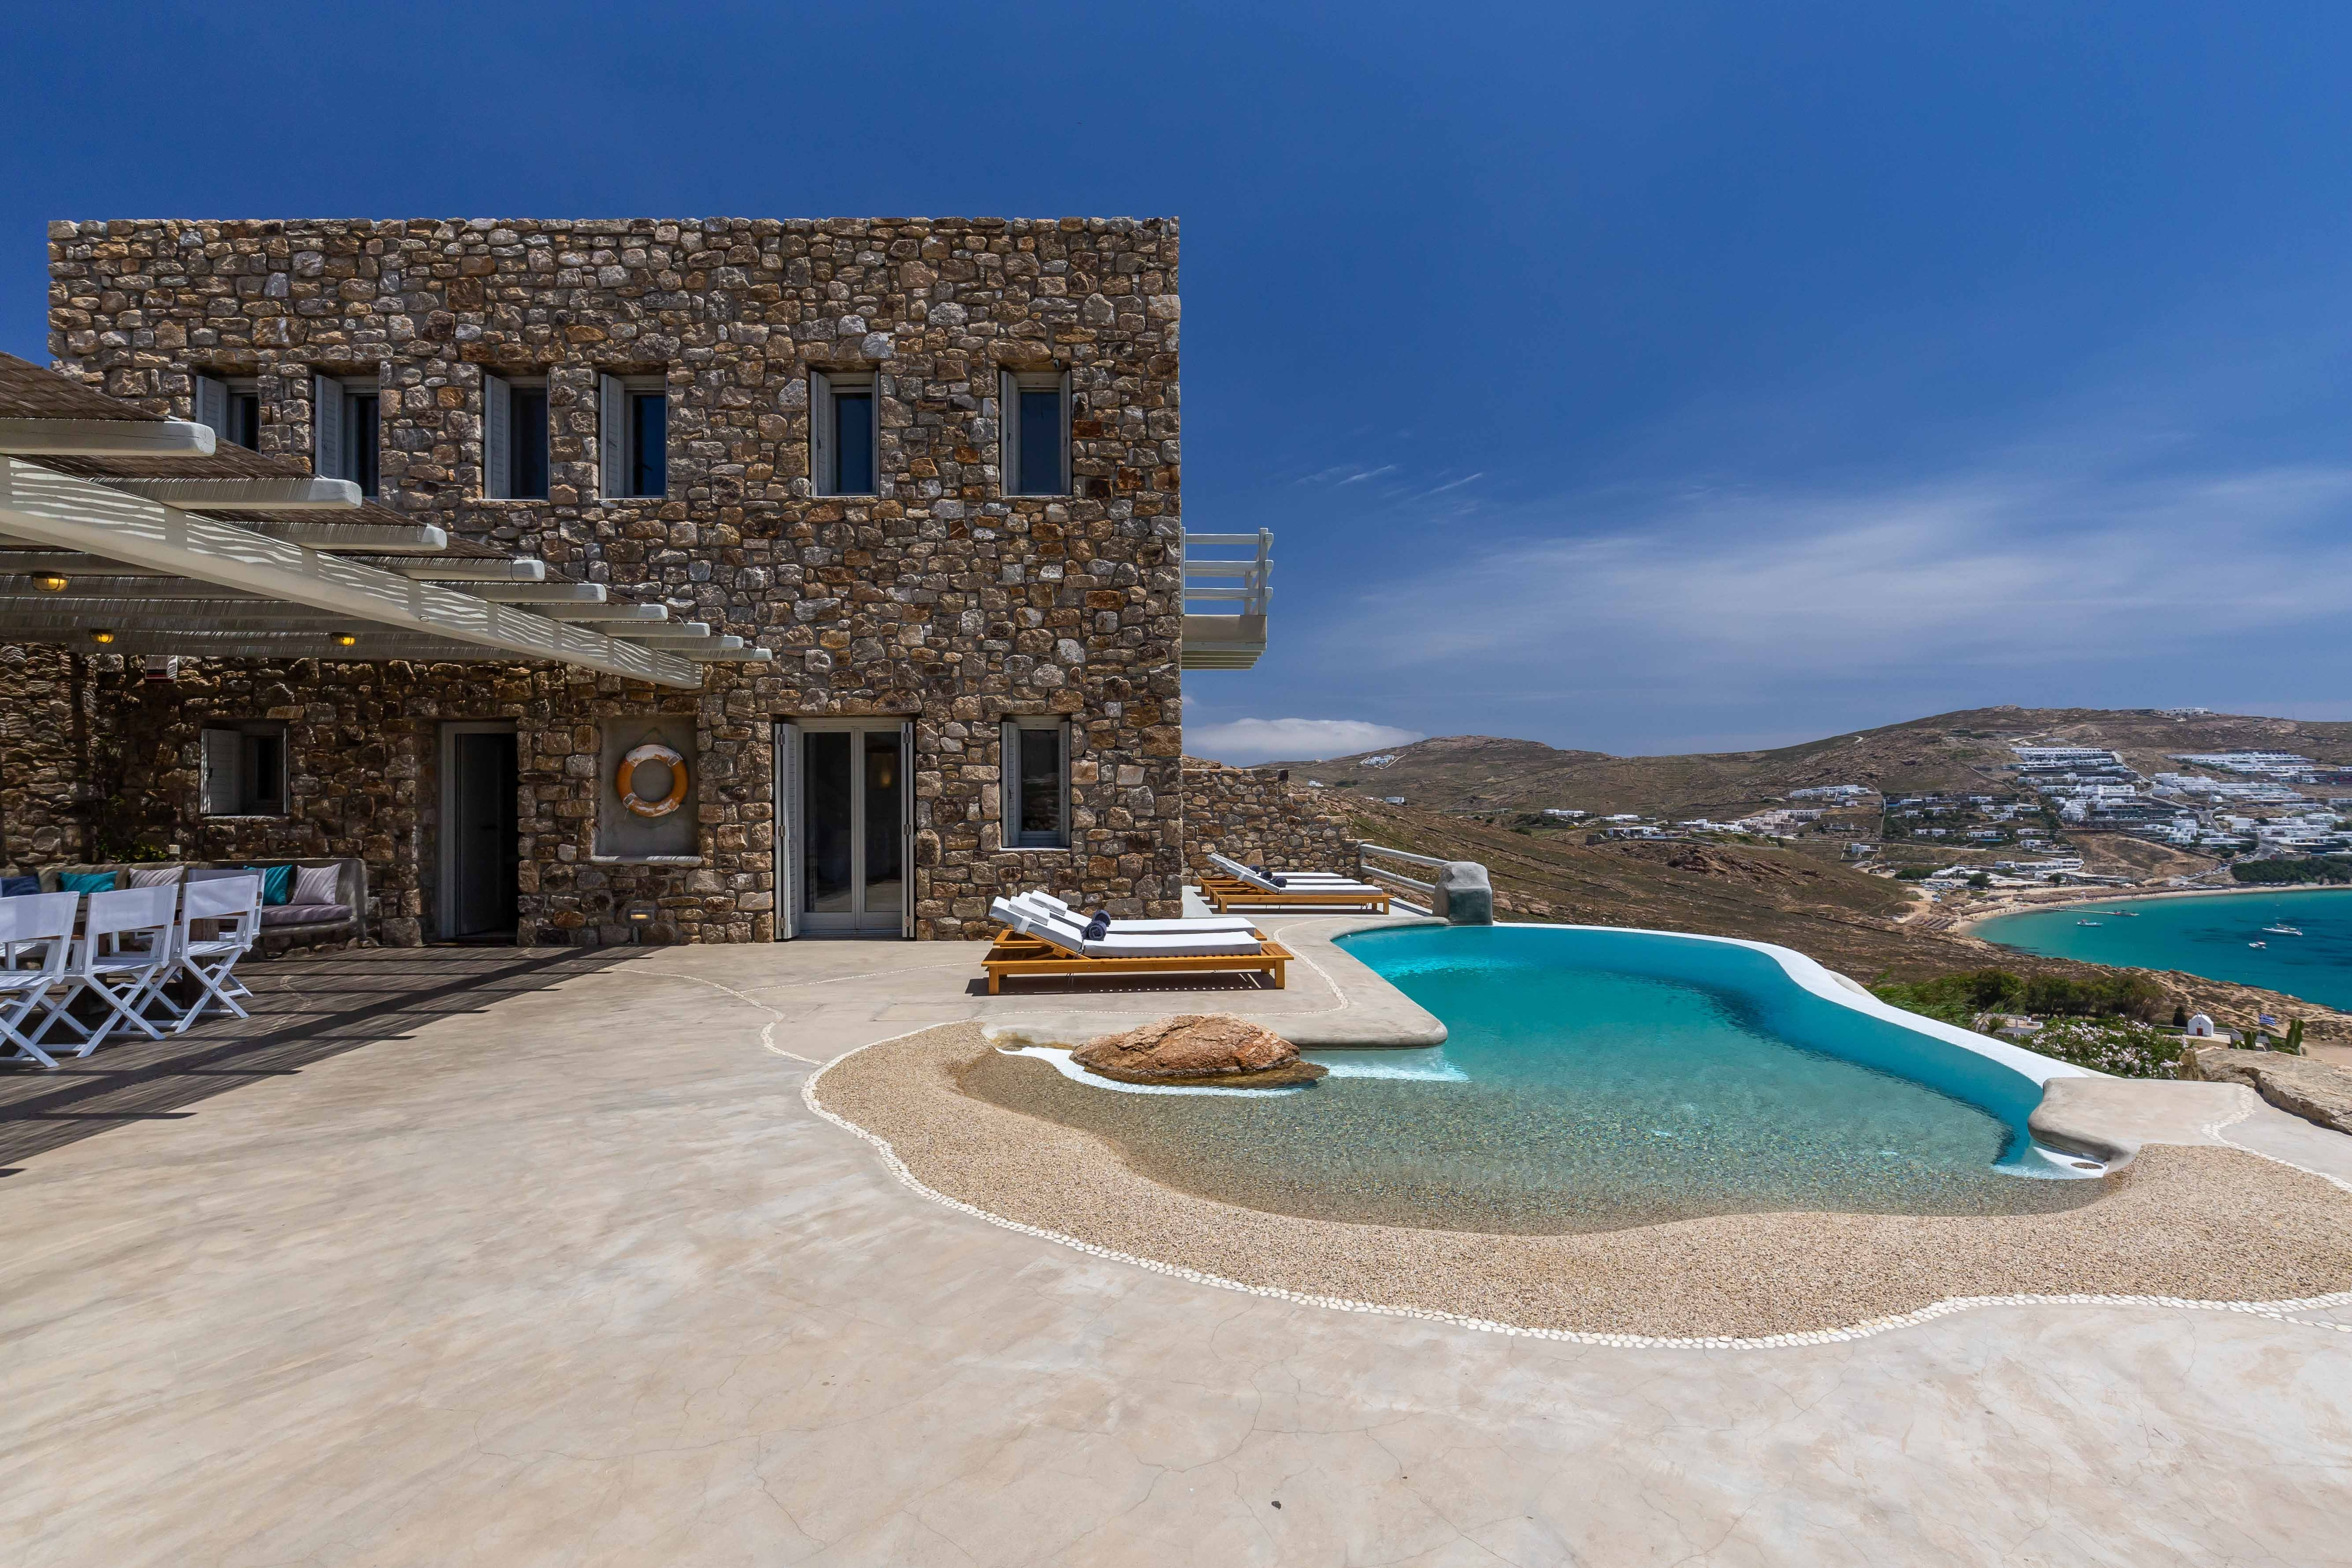 Property Image 1 - Stunning sea view villa with private pool